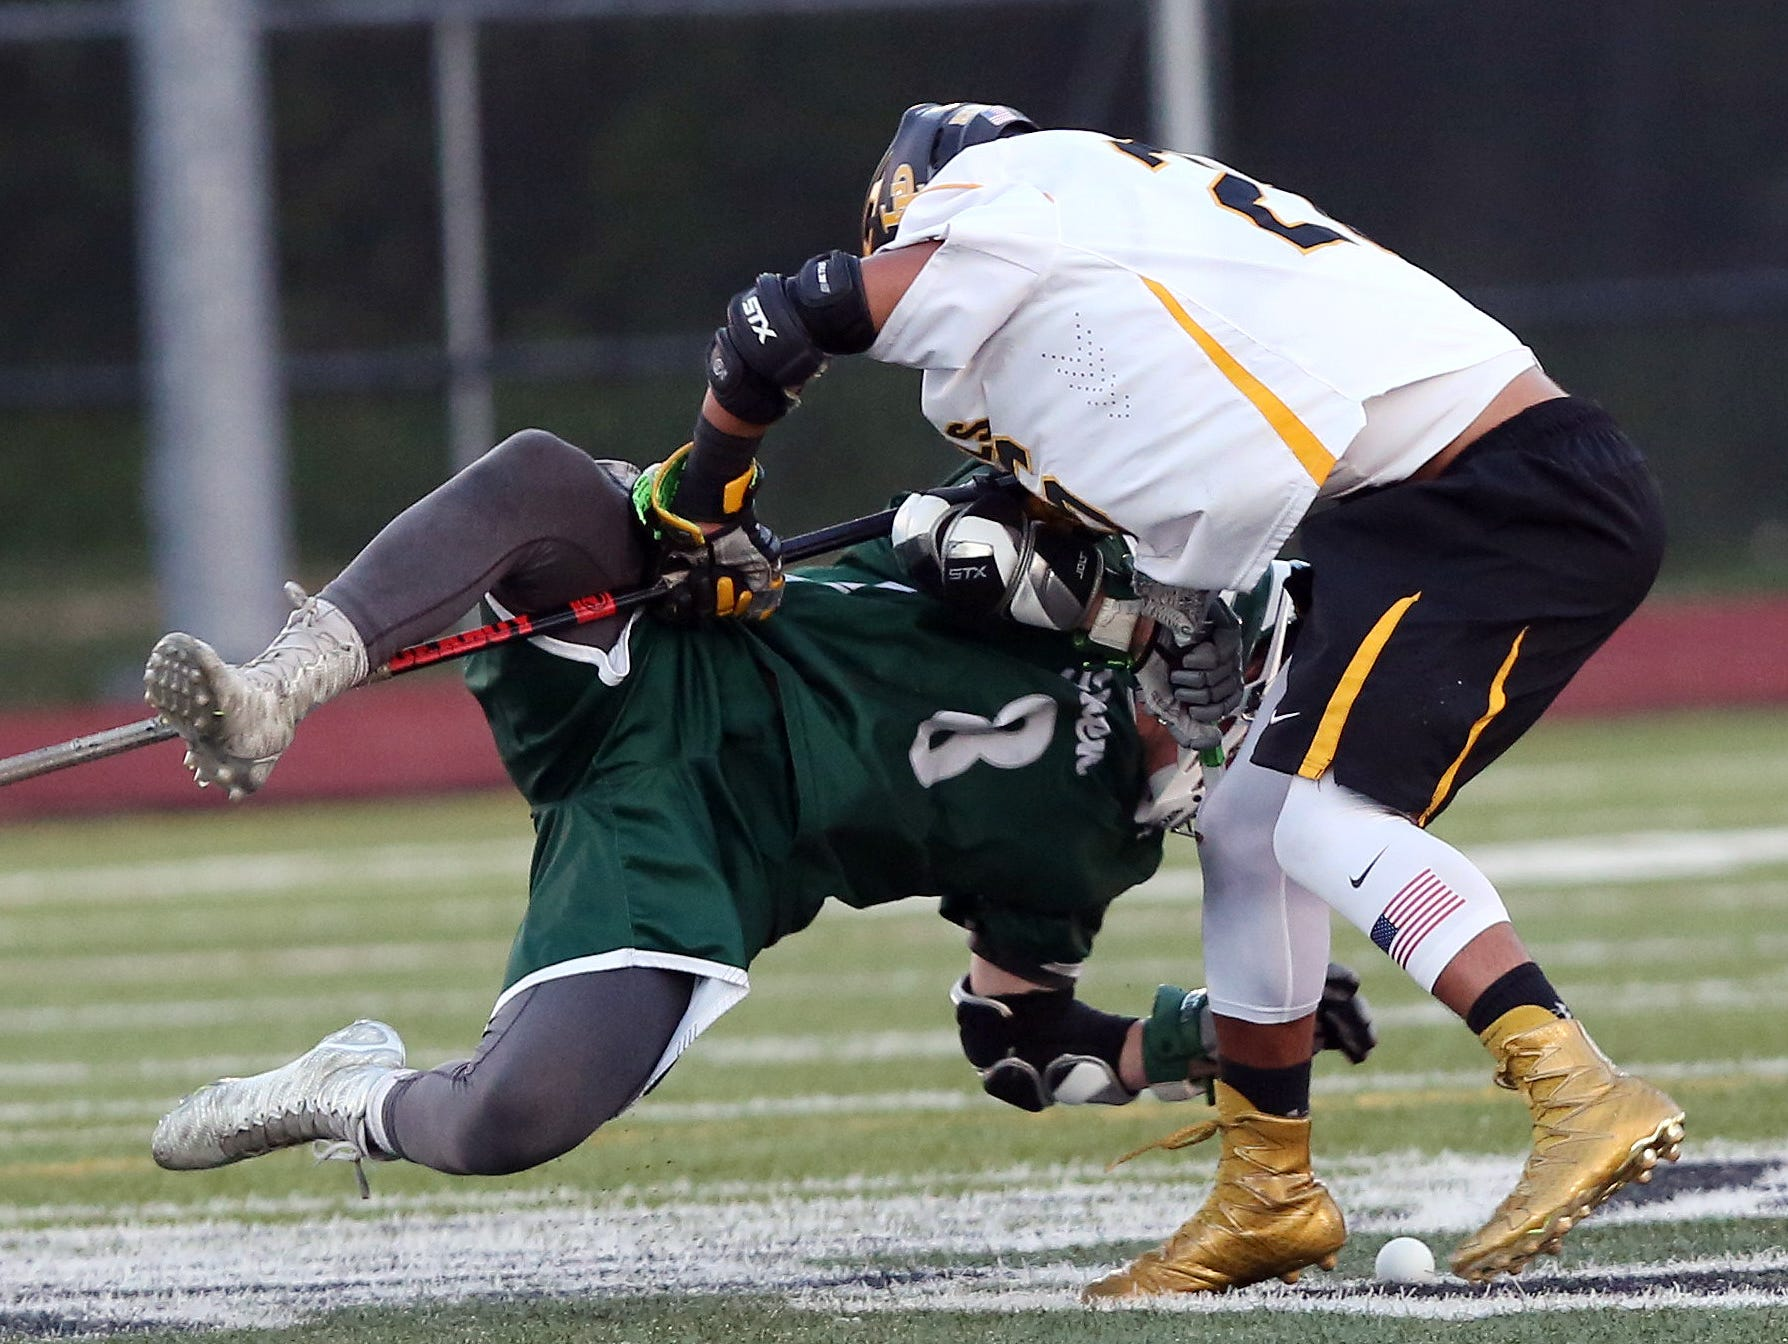 Lakeland/Panas' Nicholas Vazquez, right, wins a faceoff battle with Shenendehowa's Hayden Haldane during a Class A regional semifinal at Yorktown High School Wednesday. Lakeland/Panas won the game 8-7.